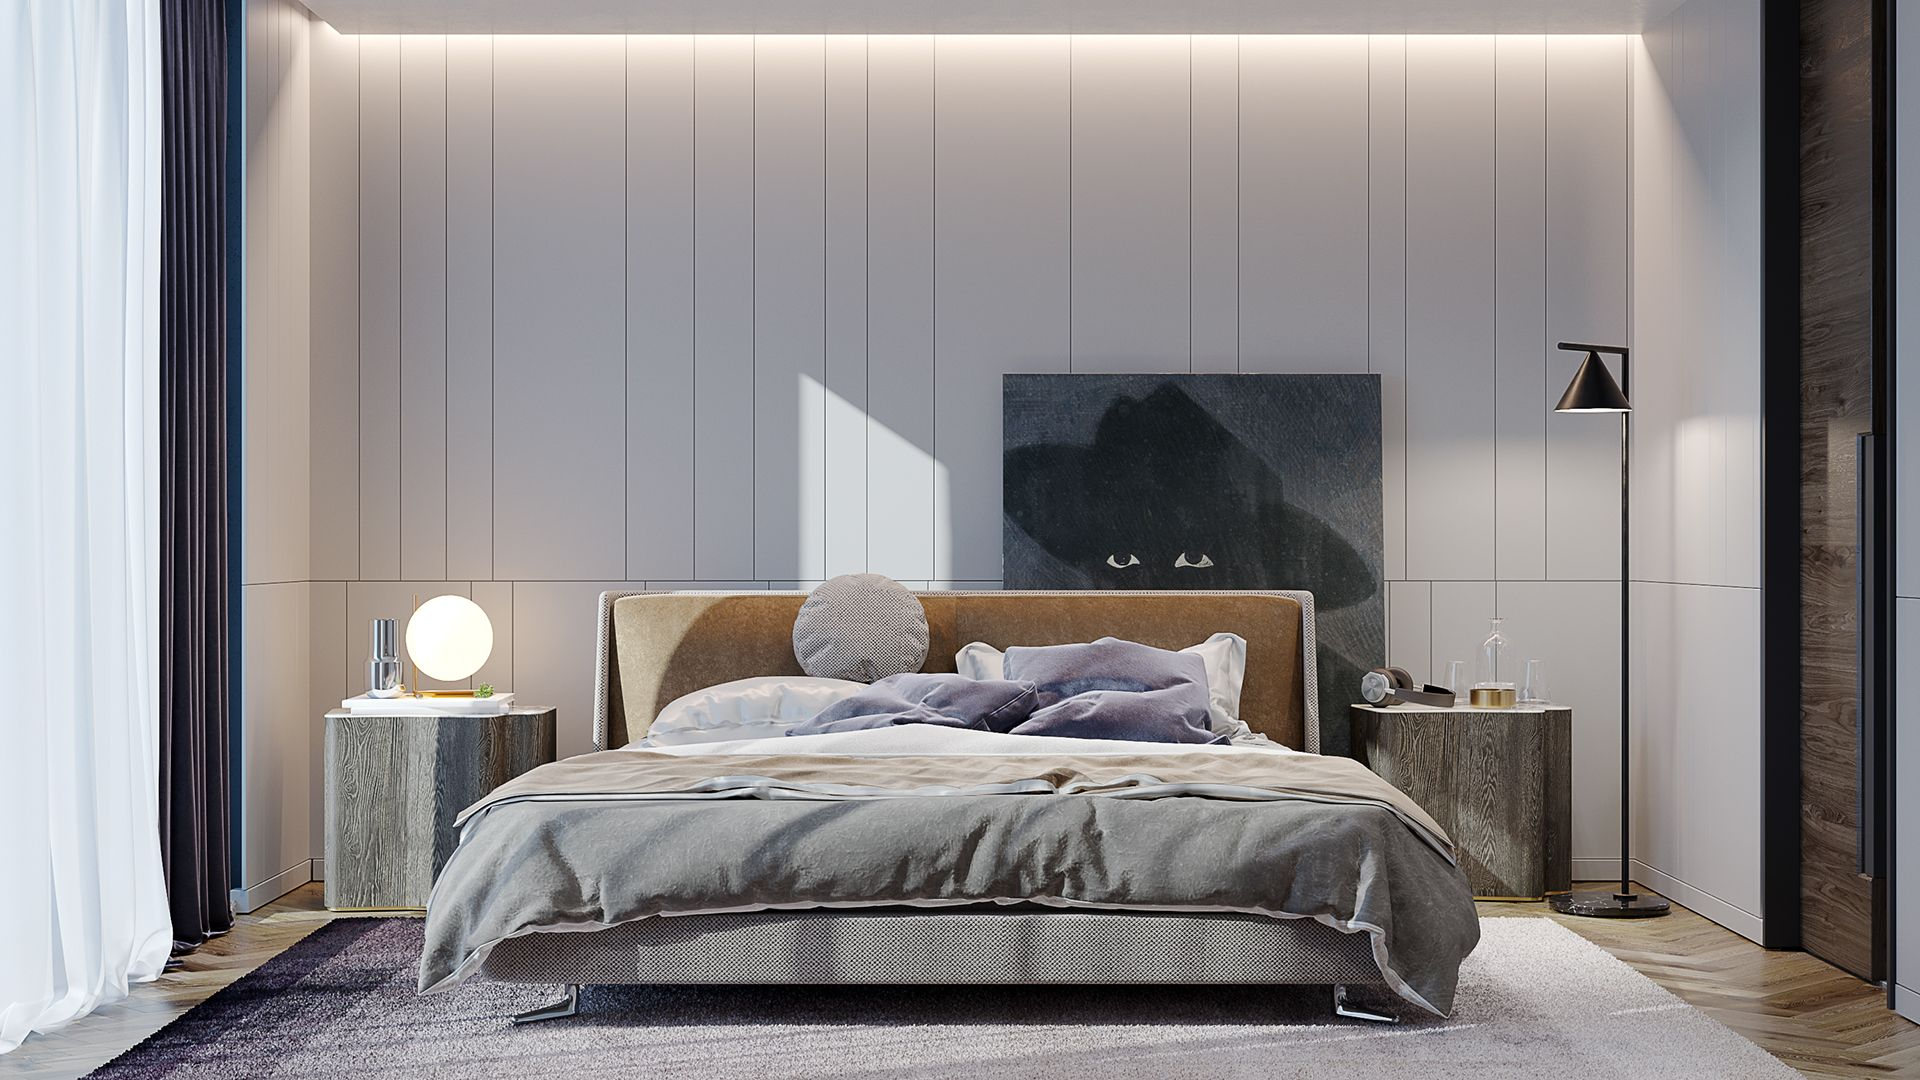 Pin By Lorenwong On 1 Contemporary Bedroom Design Luxurious